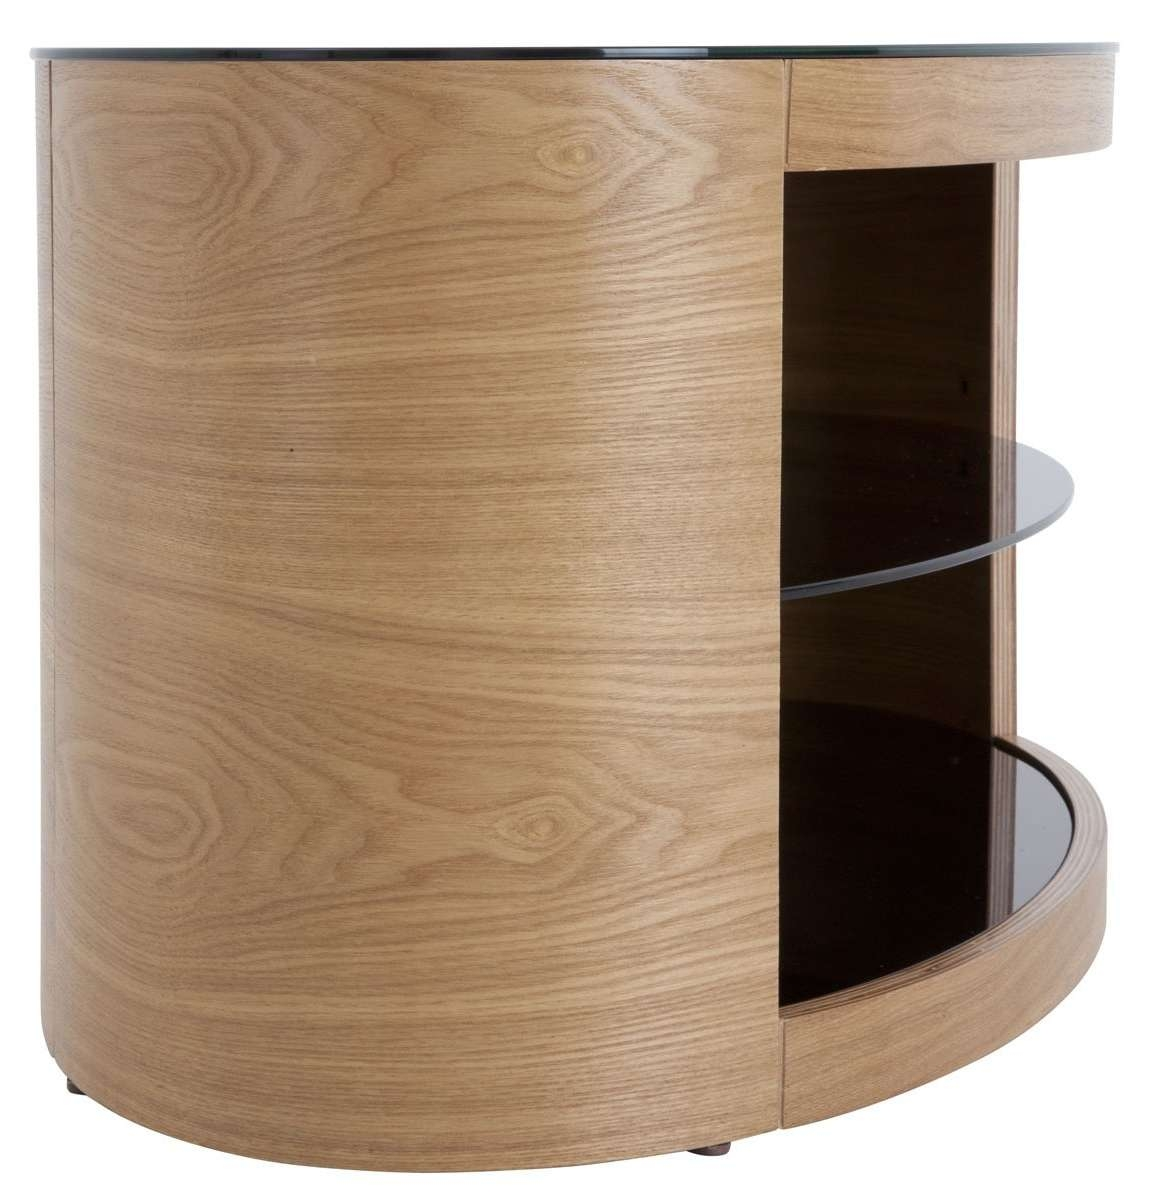 Tv Stand : Oval Tv Stand Jual Curved Jf207 The Home Company Awful Pertaining To Oval Tv Stands (View 19 of 20)